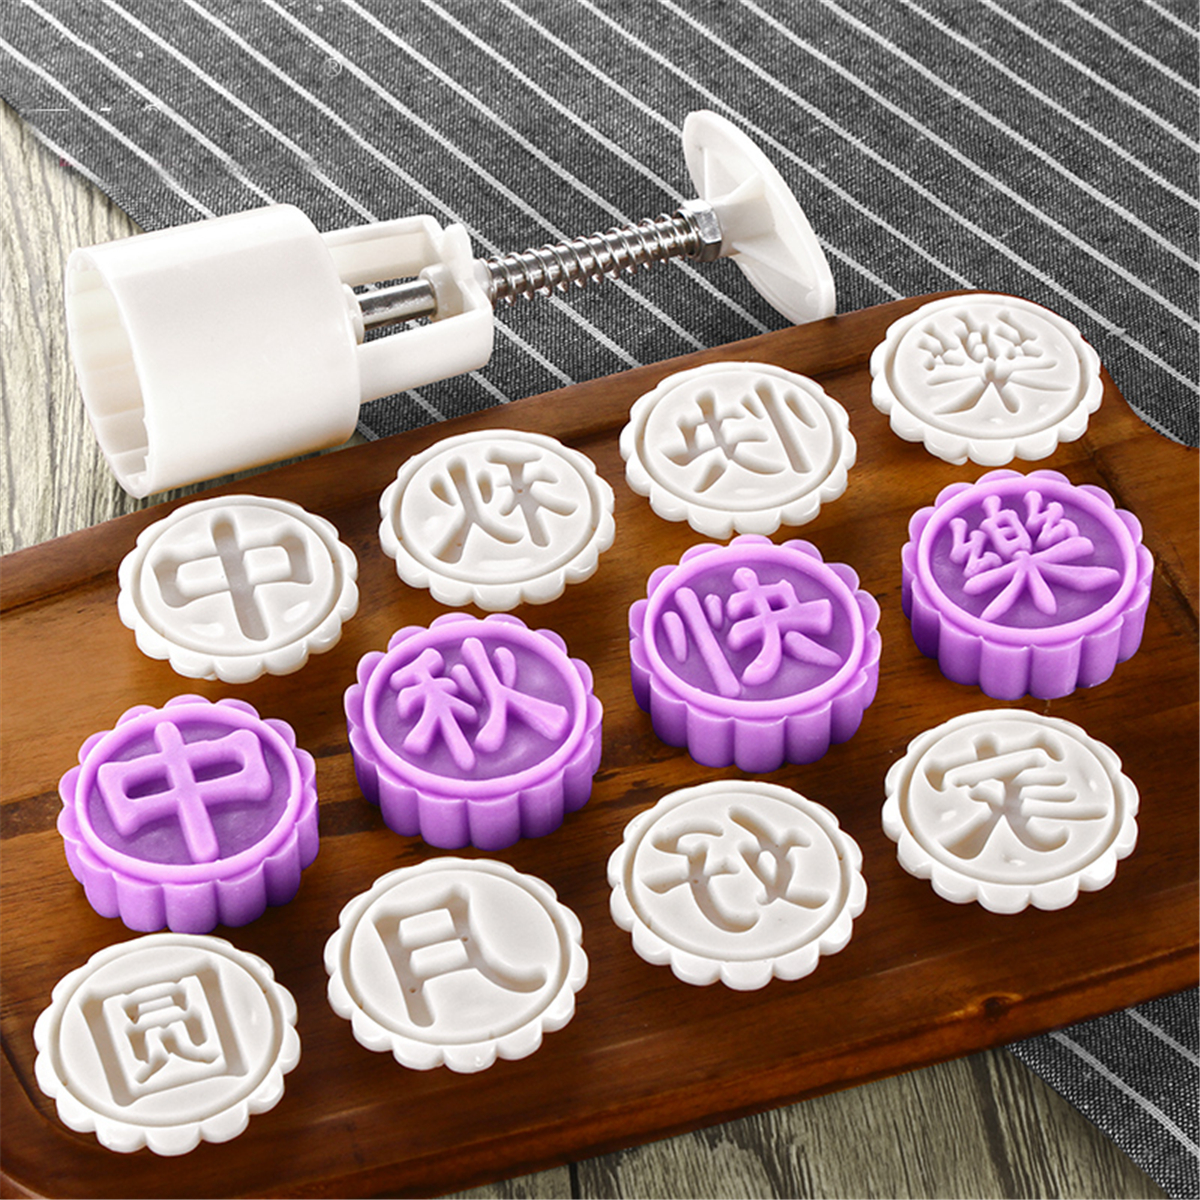 50g 8 Style Moon Cake Mould Mid-autumn Festival Pastry Mold Hand Pressure Baking Tool